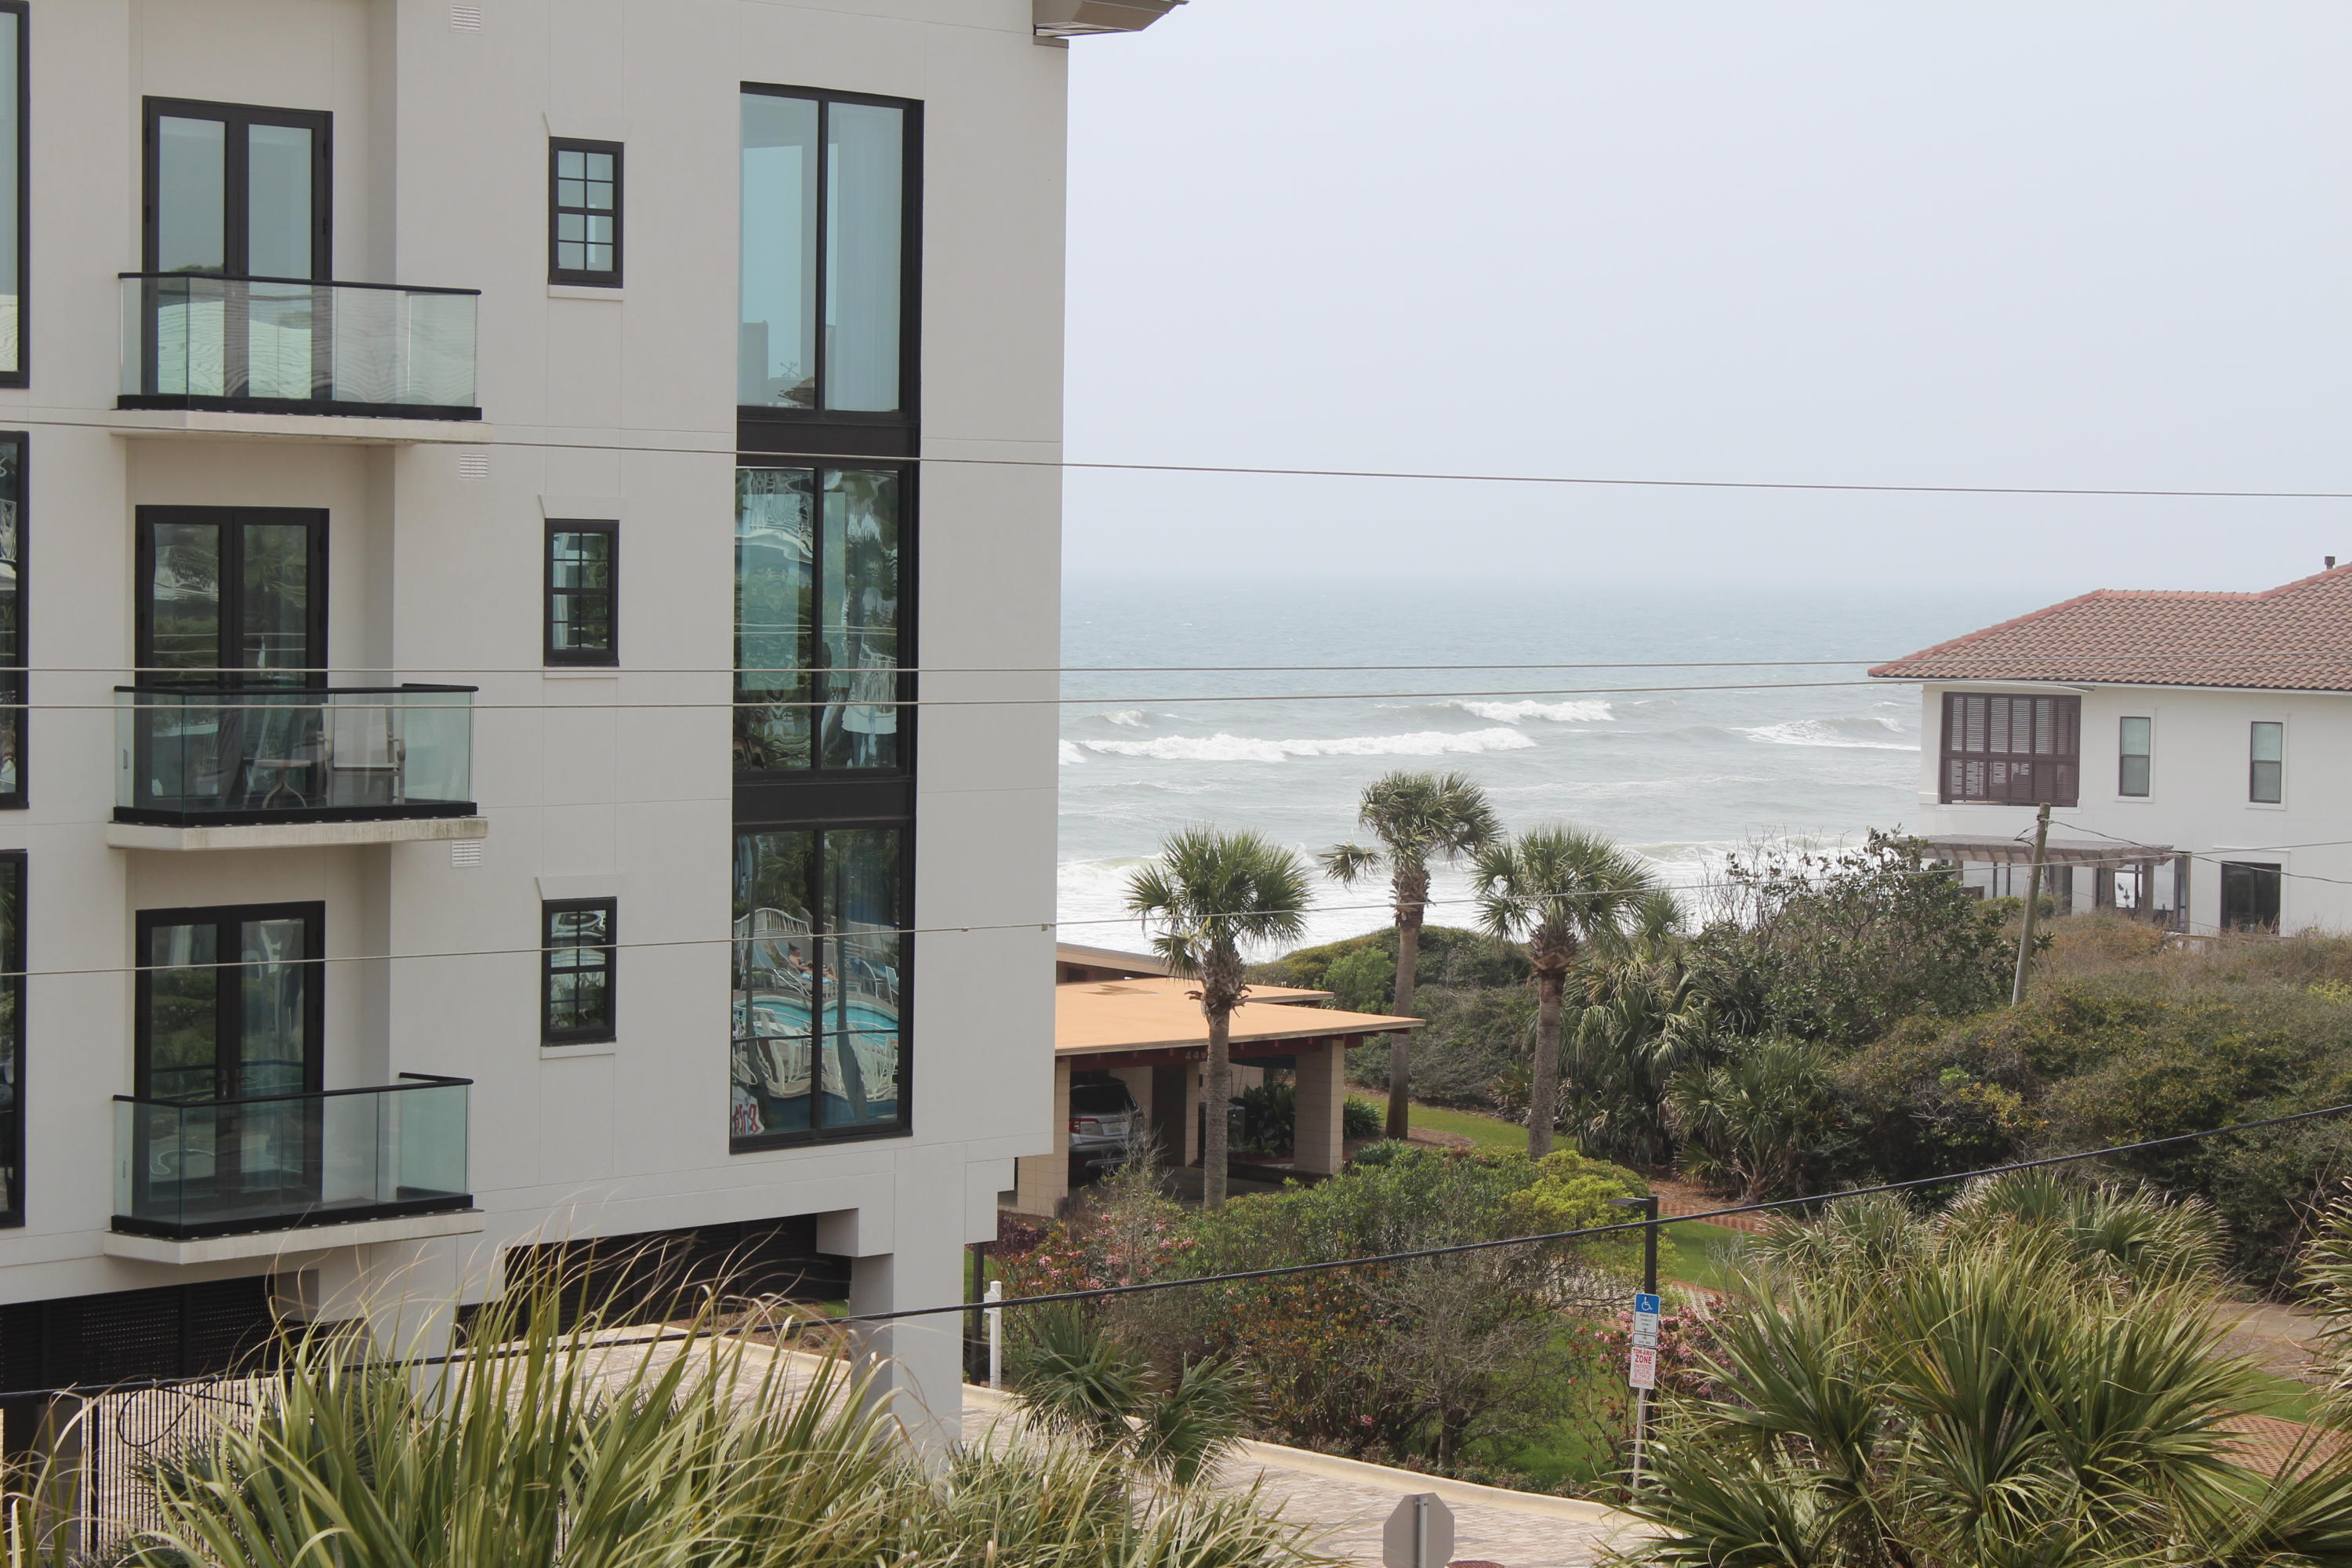 Great TOP floor studio with Gulf Views!! Walk out the French doors to an enclosed balcony with gulf views. With marble floors and updated countertops, this condo looks and feels luxurious. Newly remodeled and upgraded bathroom with walk in shower and additional storage. Queen bed with wall mounted flat screen tv. A full kitchen with granite countertops, stove/oven, microwave, dishwasher and full size refrigerator makes it easy to stay in. This unit is one of very few in the Inn that has it's own washer and dryer. This is the perfect getaway. Gulf Place is a wonderful community with, three pools, hot tubs, tennis courts and walking trails. With three deeded beach accesses it's easy to put your toes in the sand. You'll find everything you need in the community, excellent dining at La